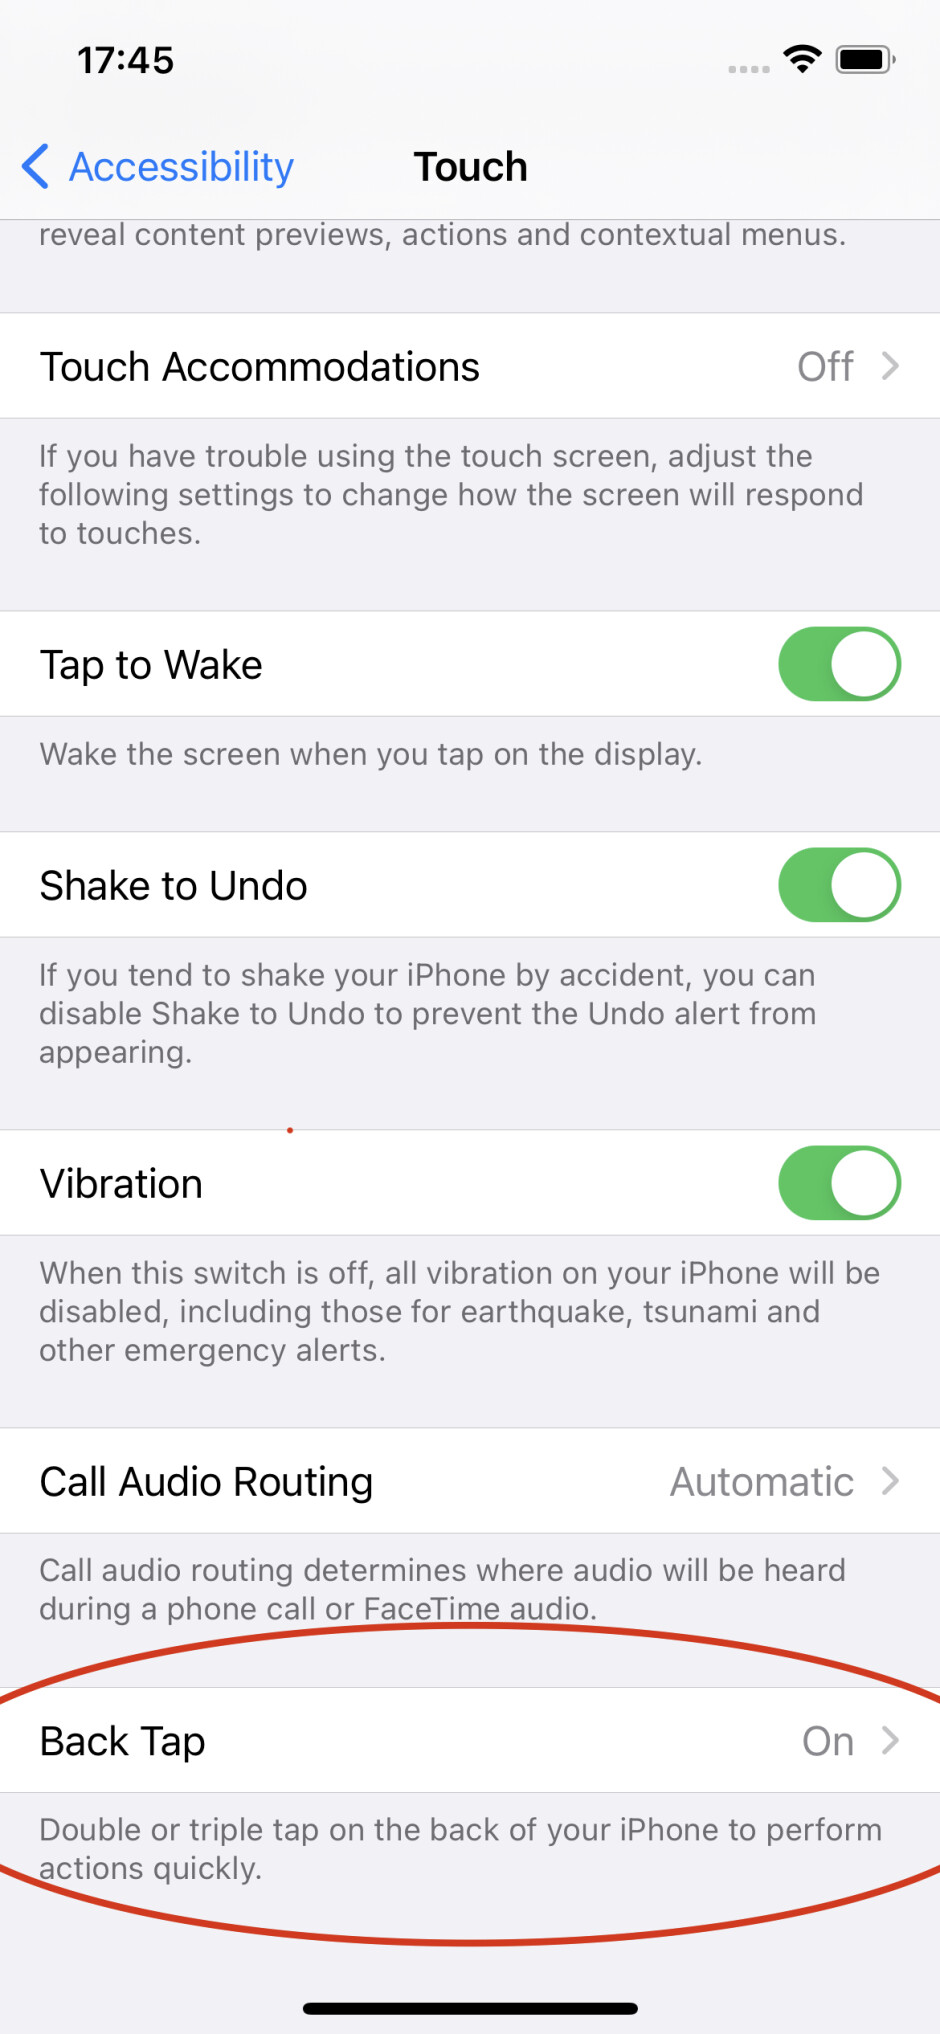 Do you use Back Tap on your iPhone?